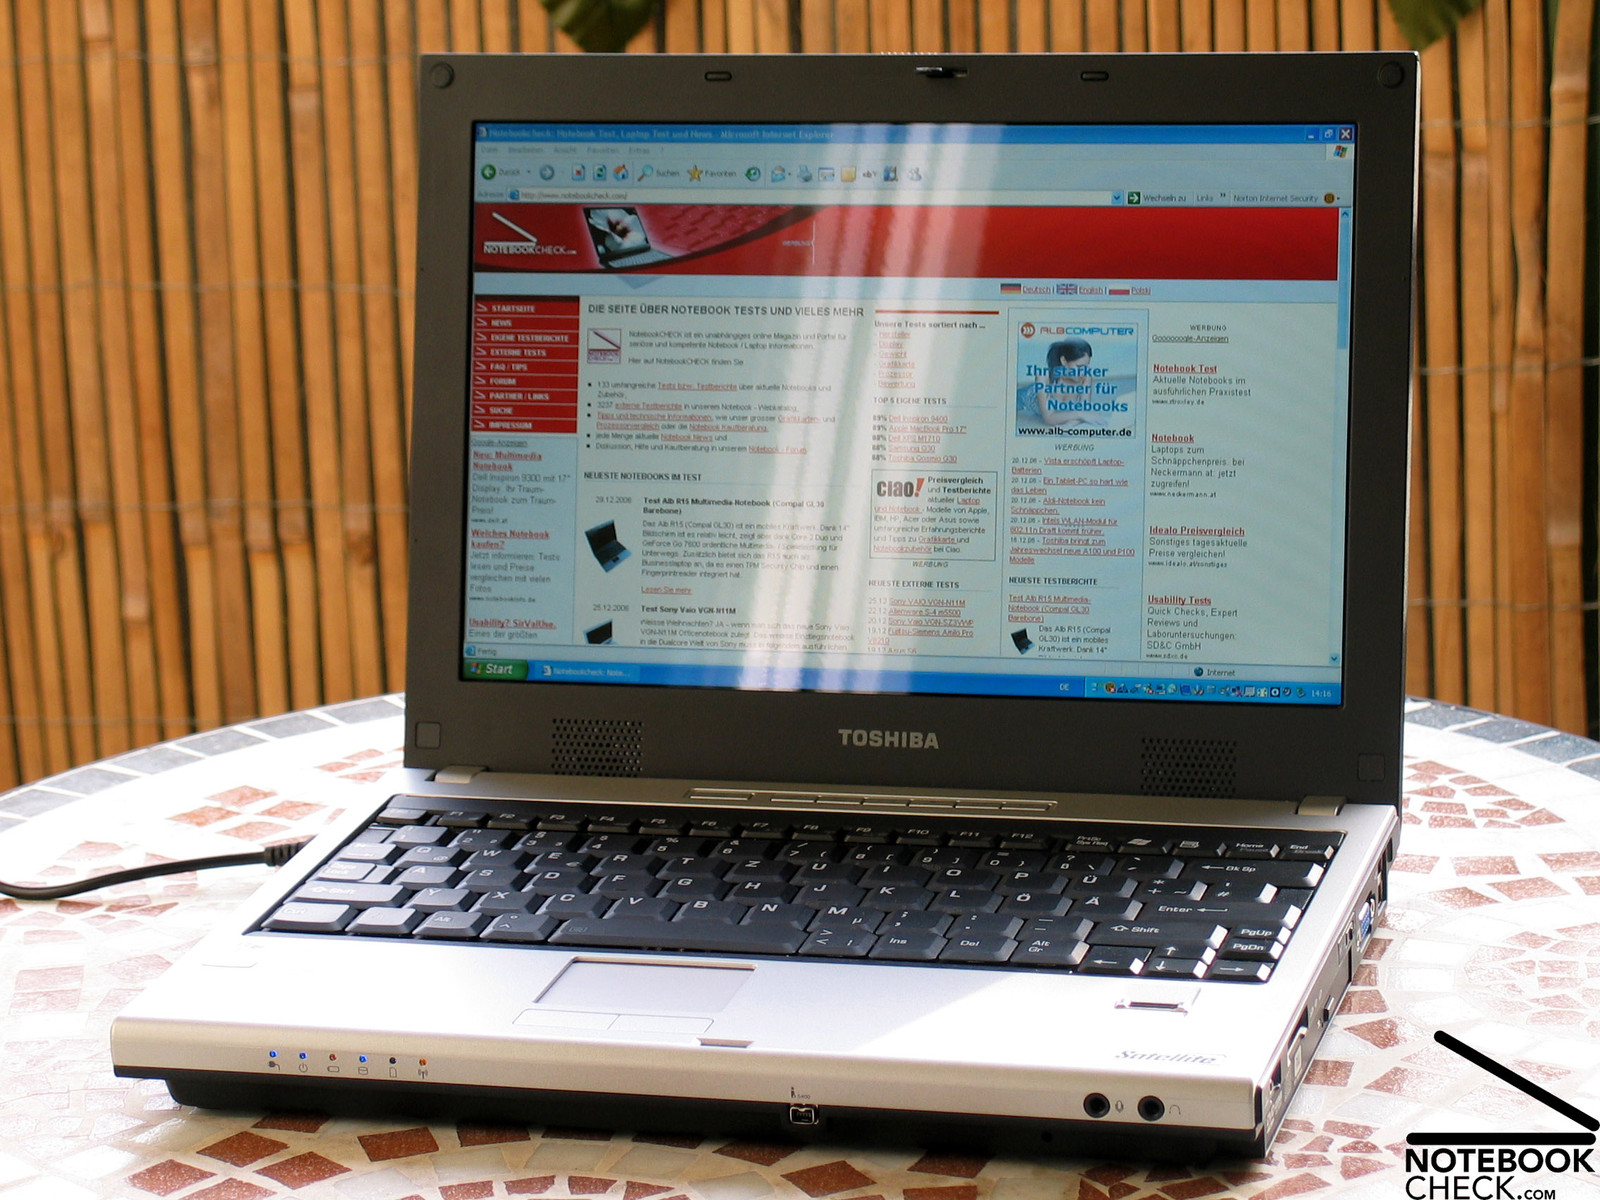 TOSHIBA SATELLITE U200 ASSIST DRIVER DOWNLOAD